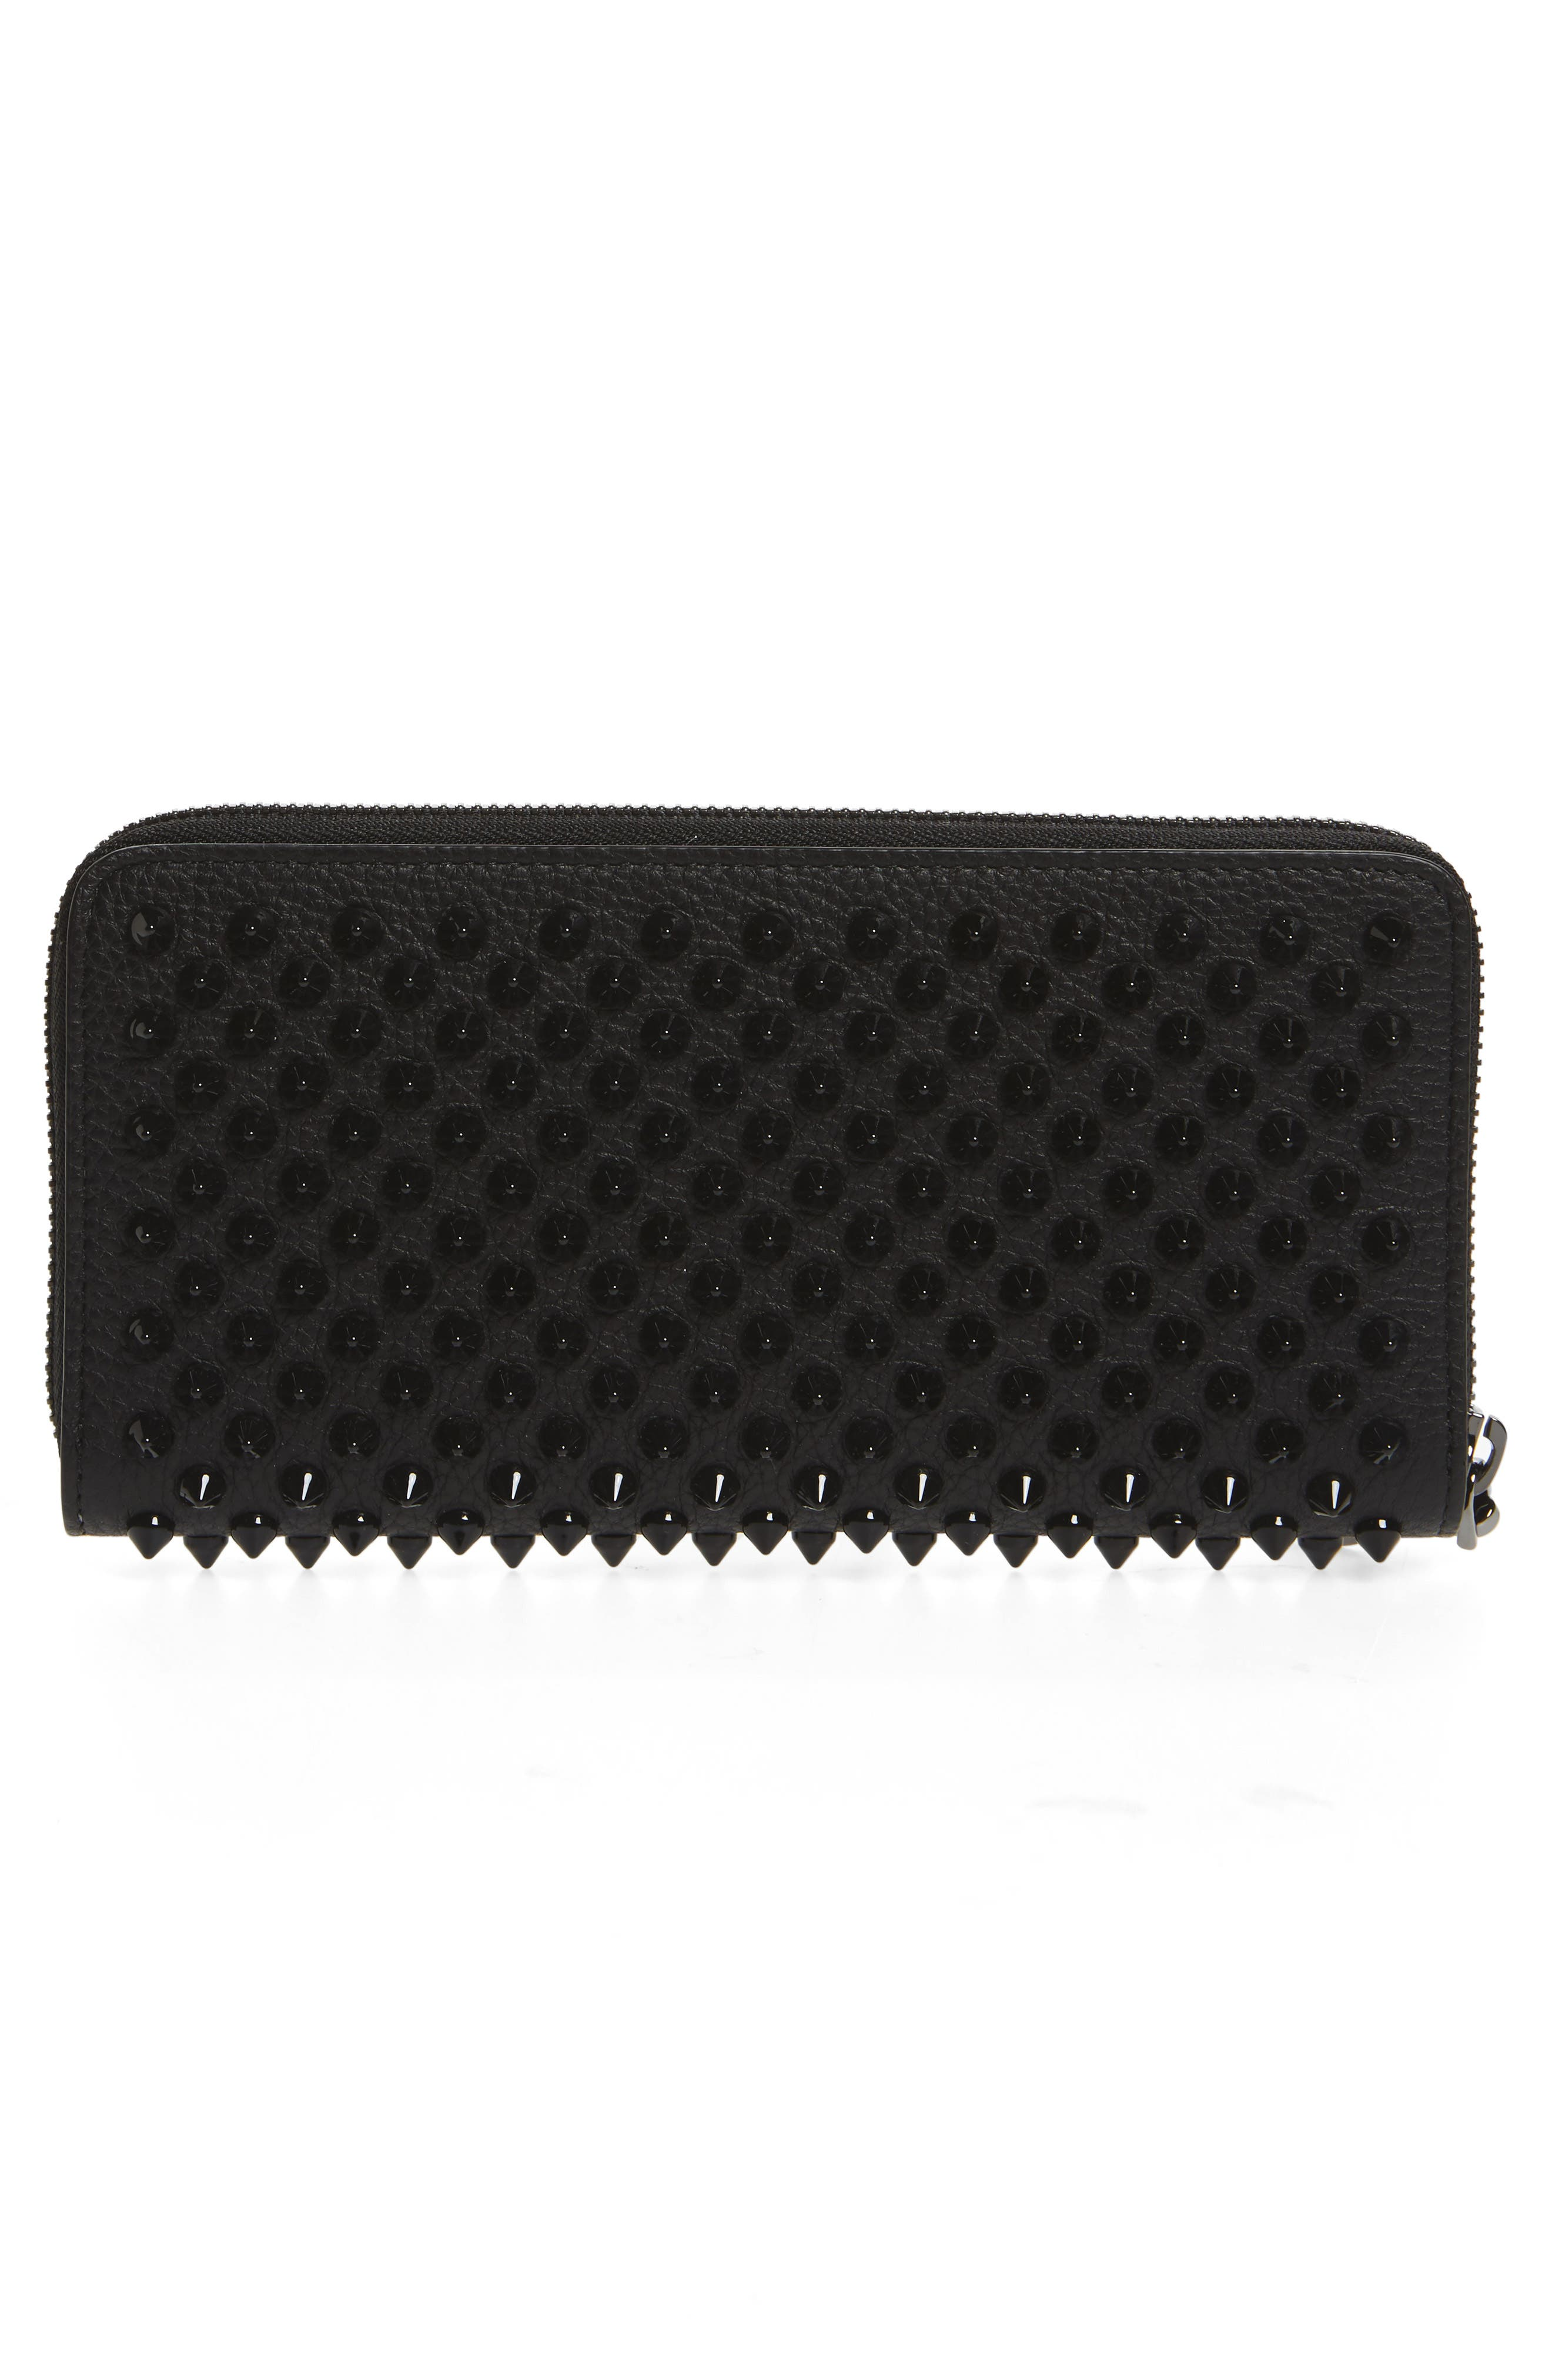 Panettone Spiked Calfskin Wallet,                             Alternate thumbnail 3, color,                             BLACK/ BLACK